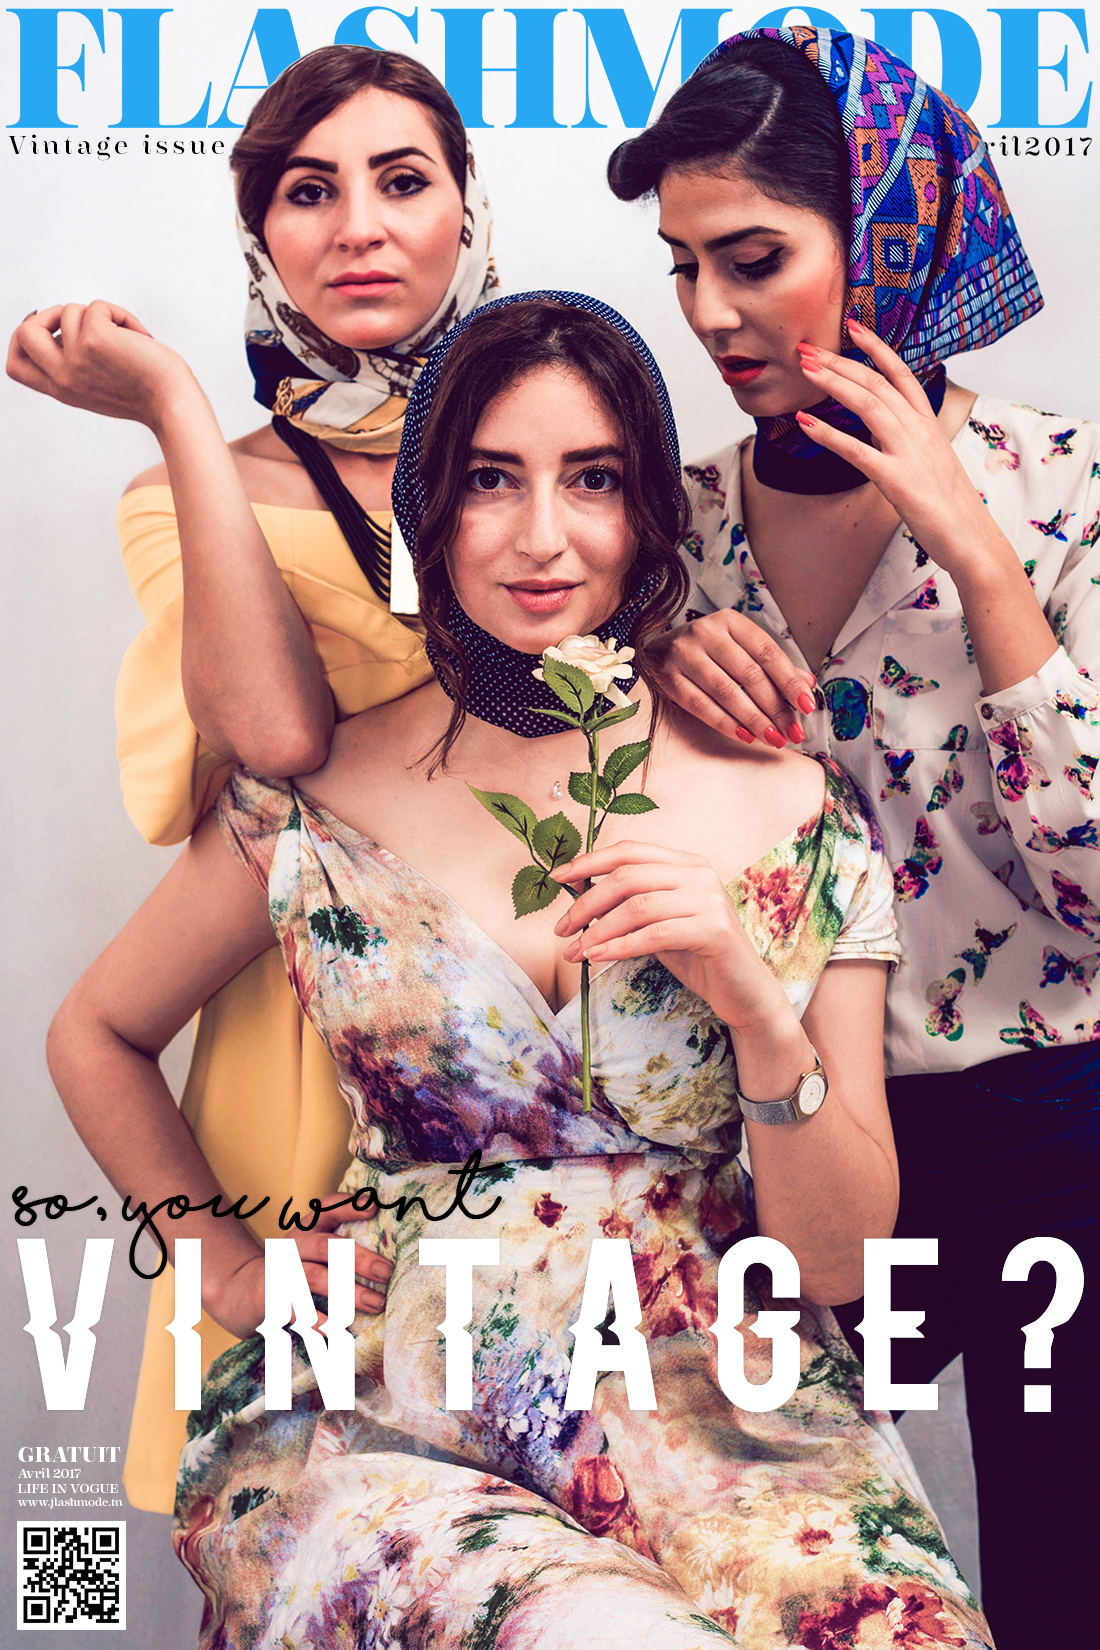 So, You want Vintage ?